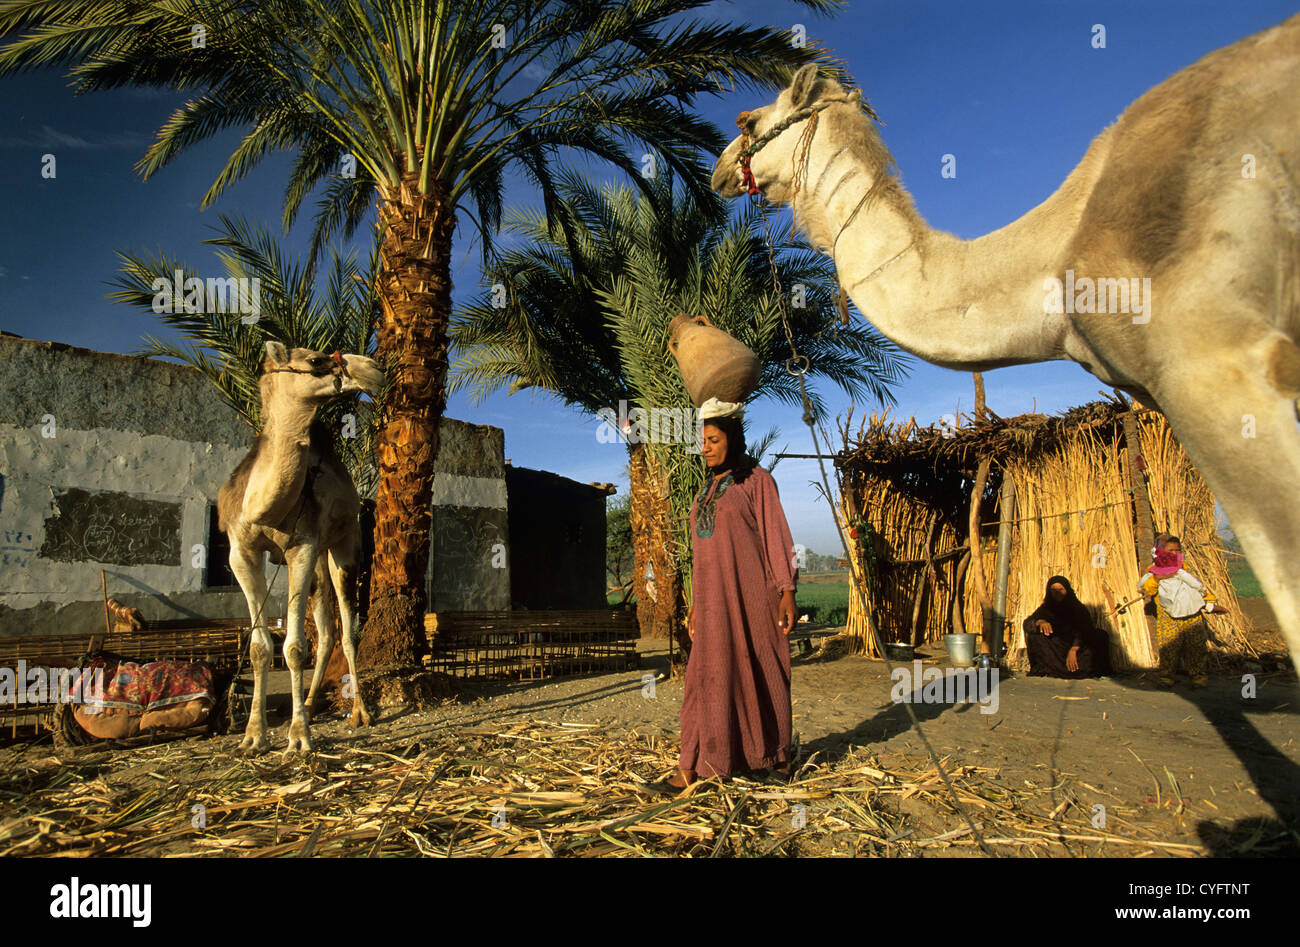 Egypt, Luxor, Nile river, West Bank, woman leaving home to get water with jar from Nile river. Camels - Stock Image